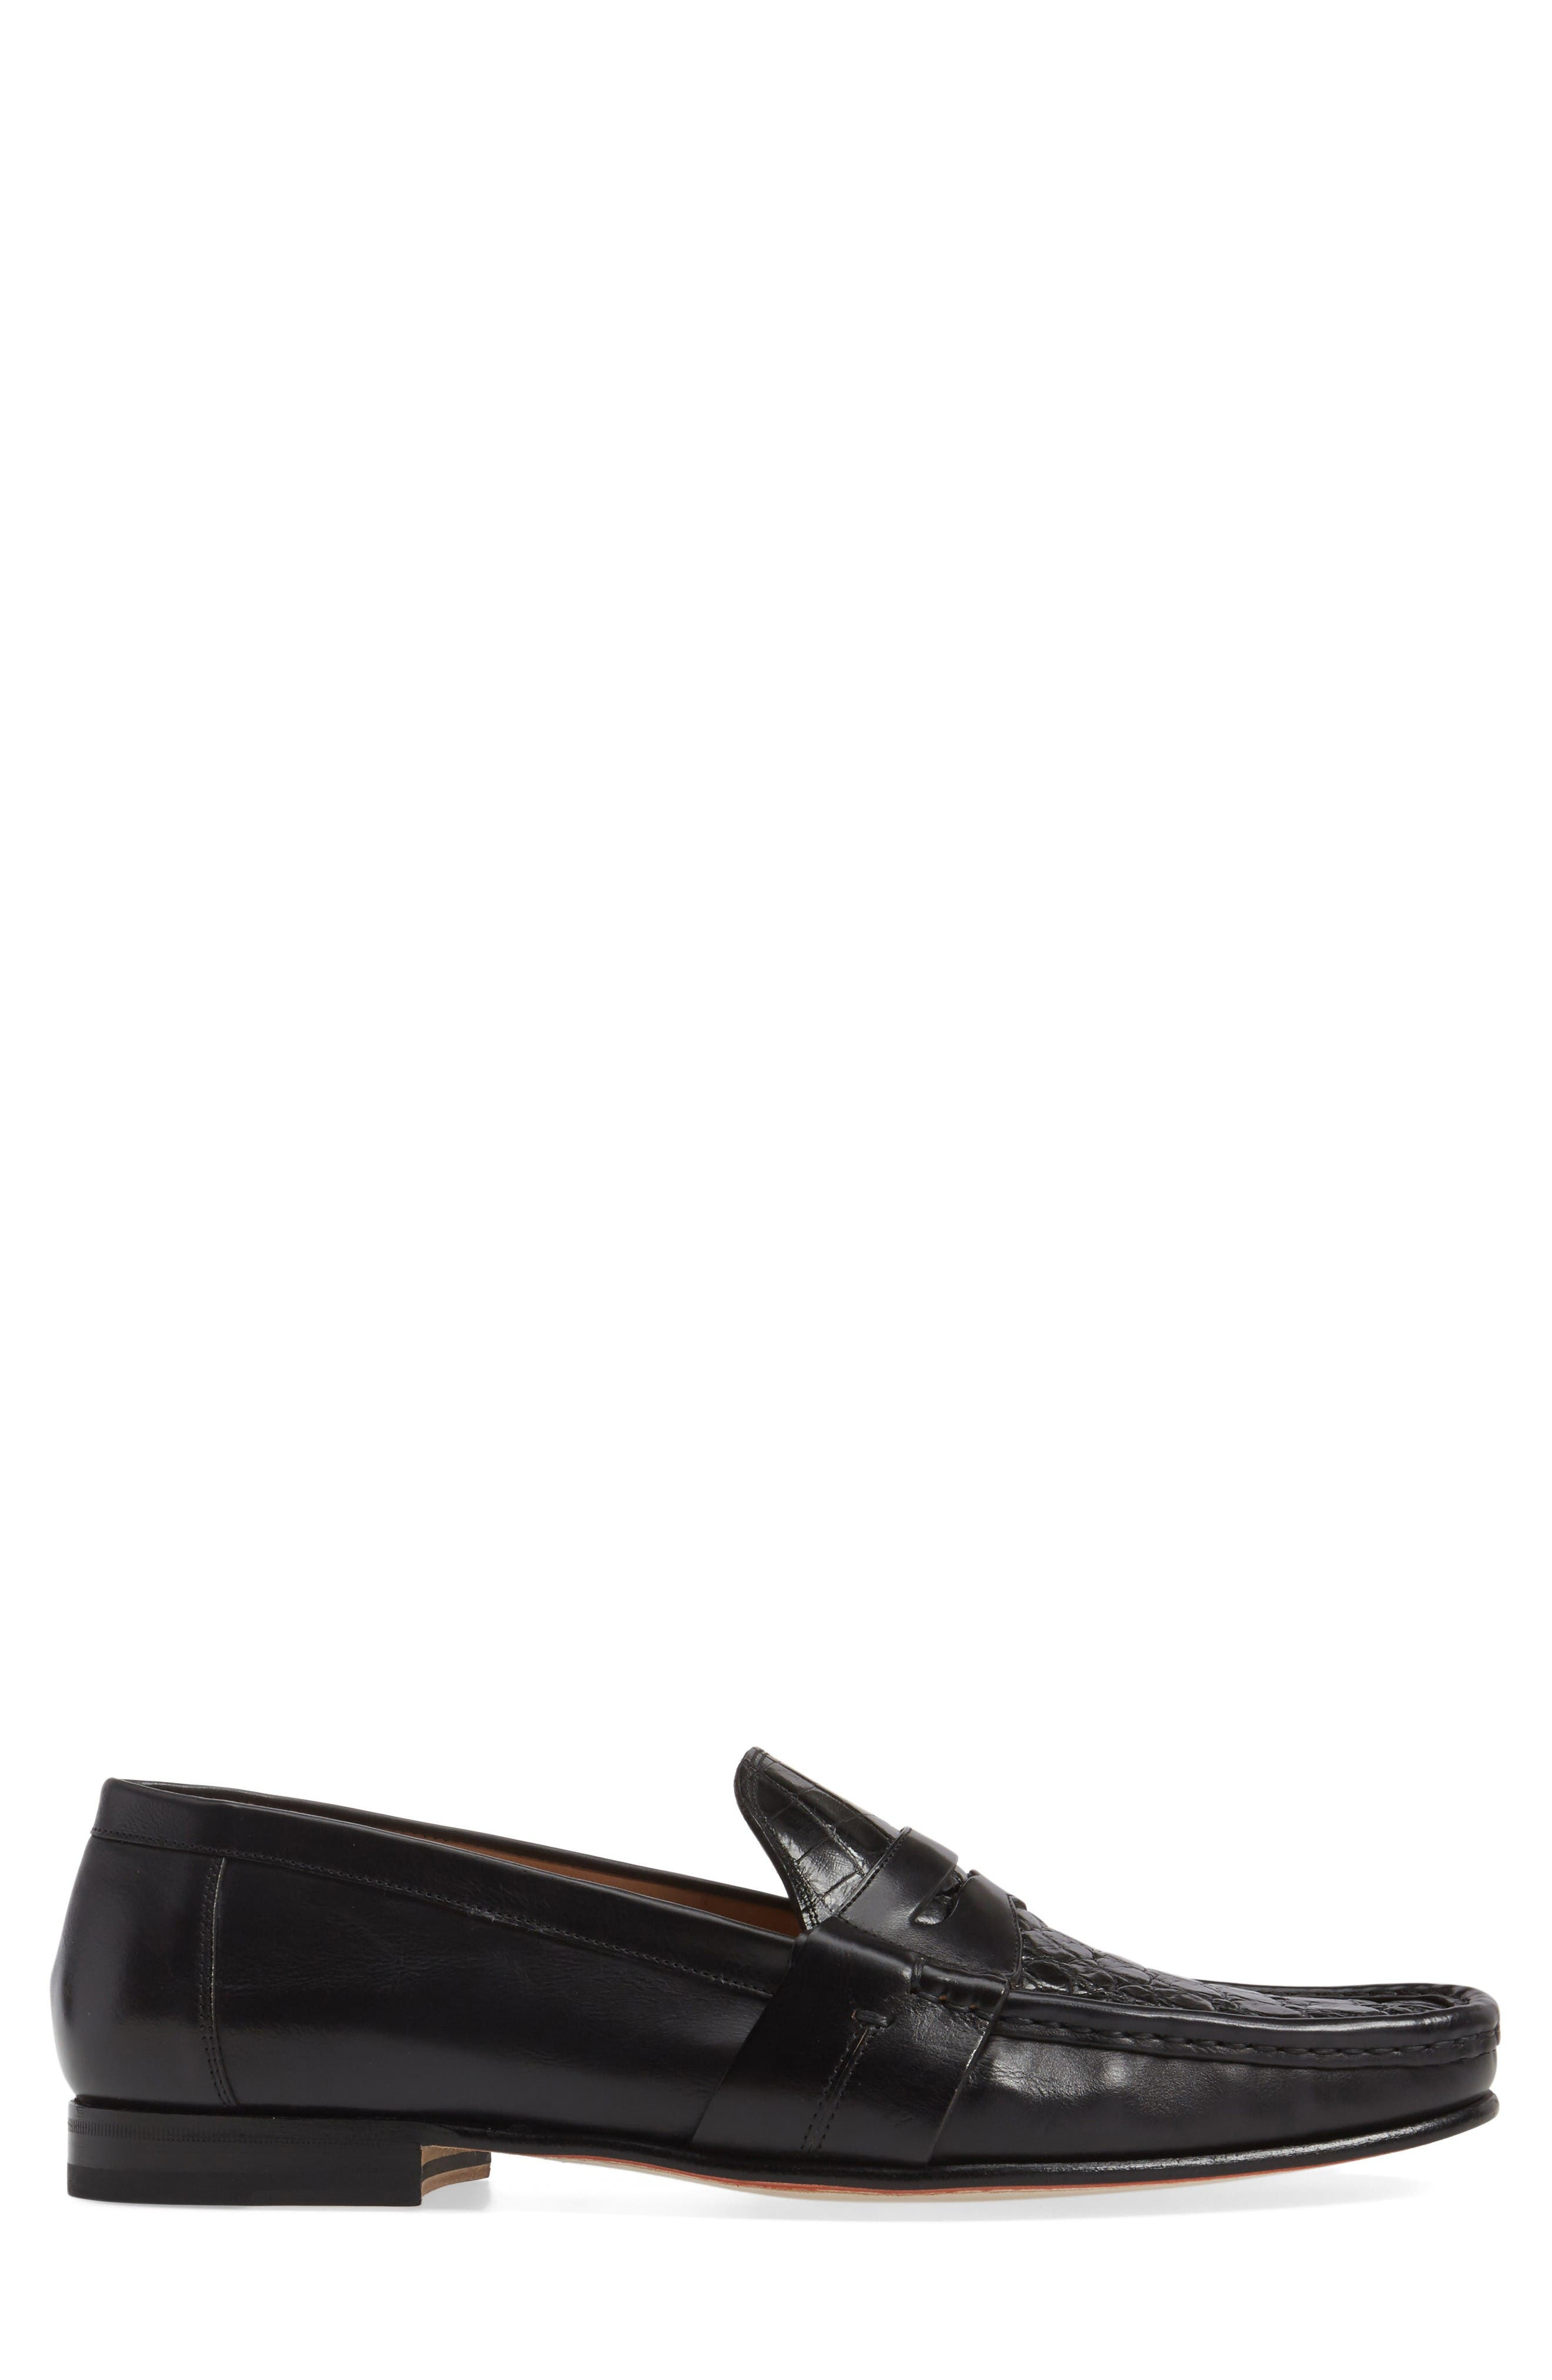 Marconi Penny Loafer,                             Alternate thumbnail 3, color,                             Black Leather